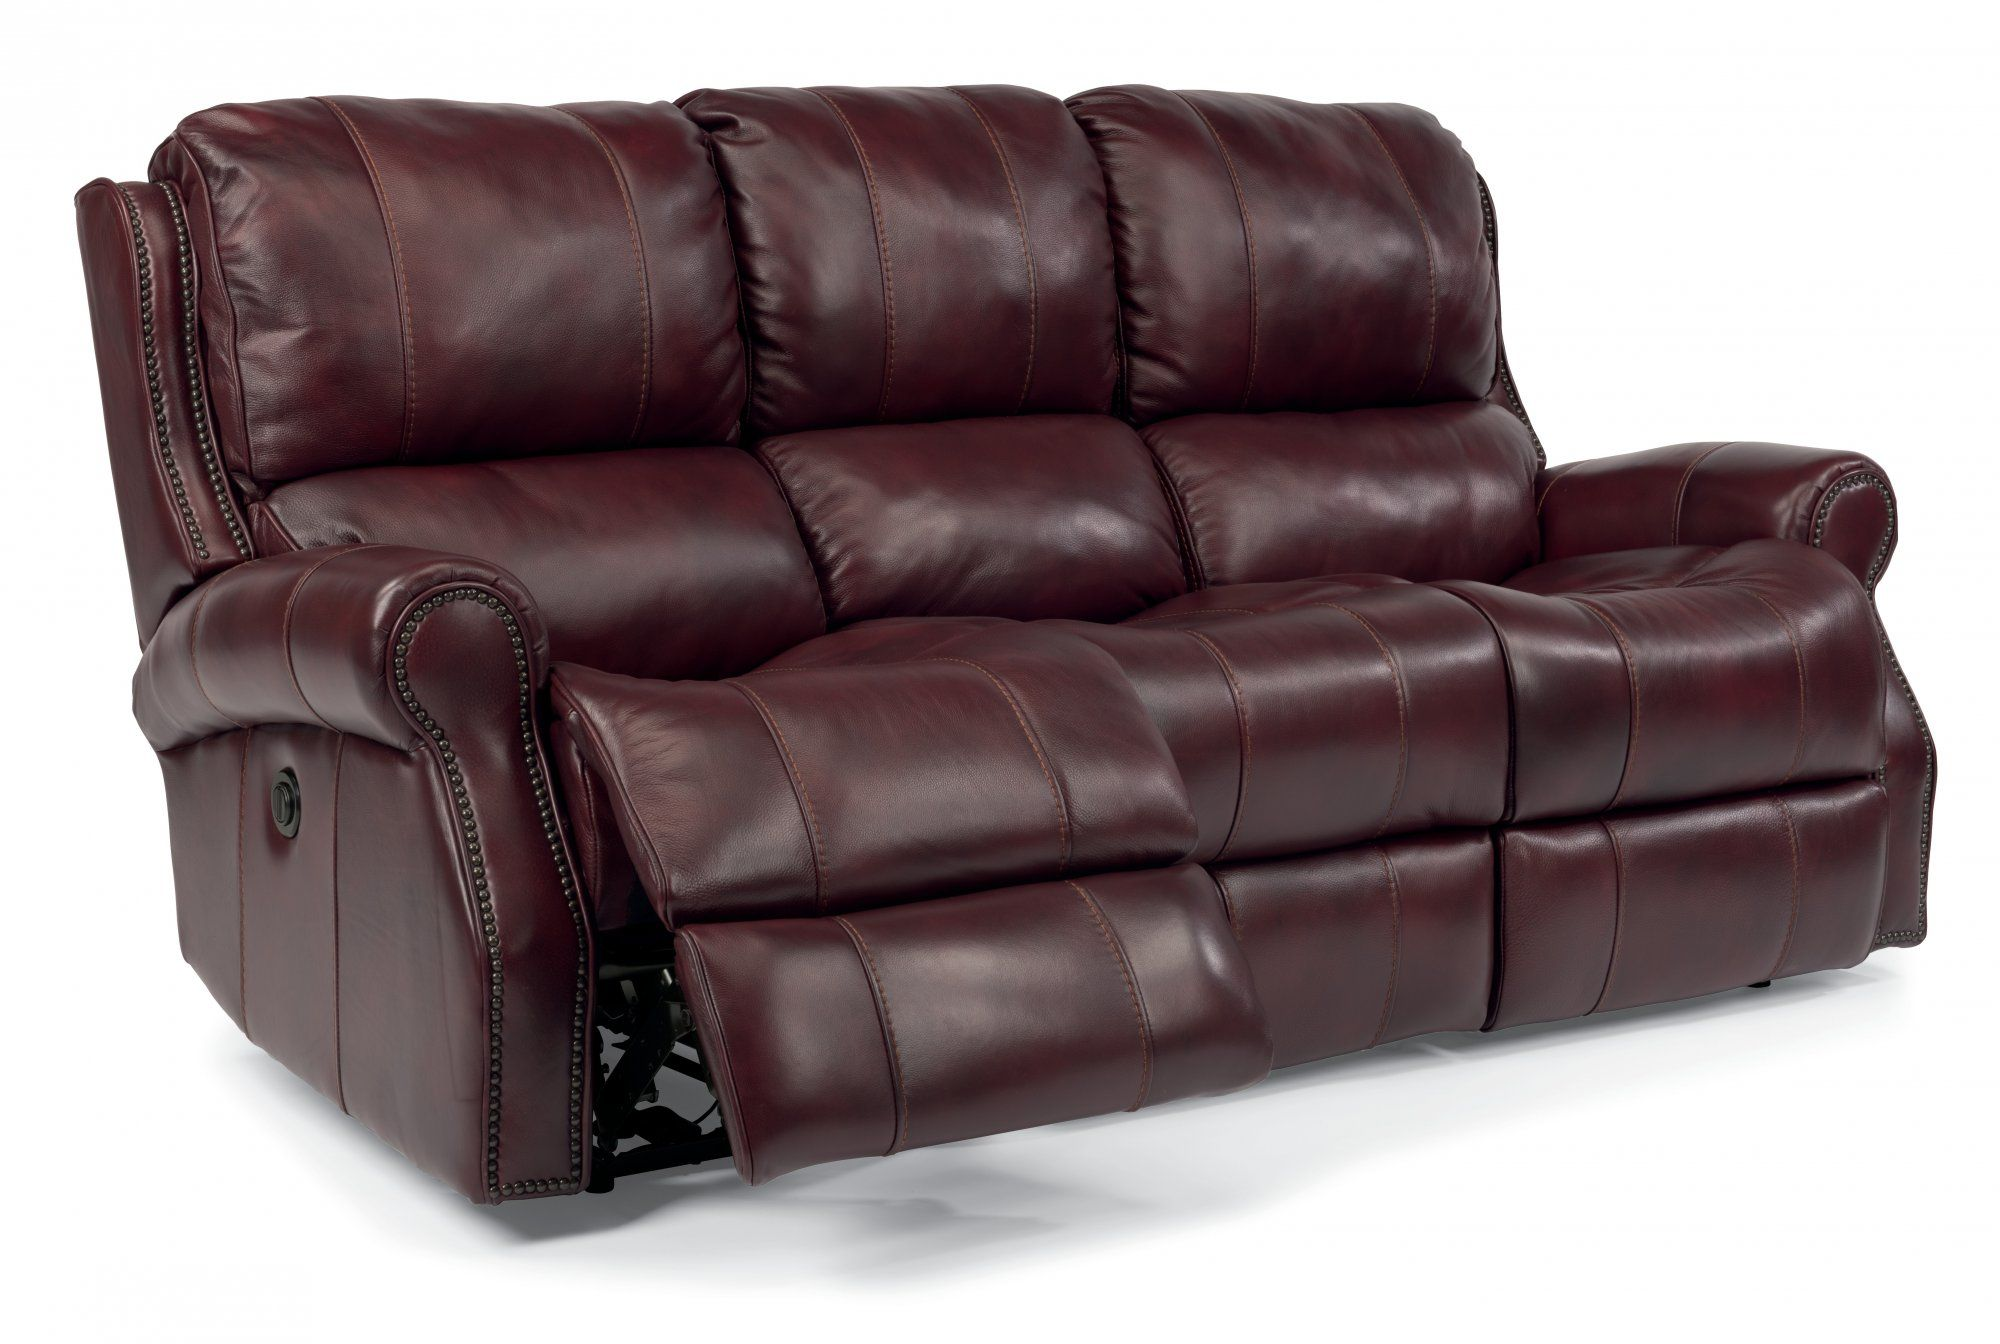 Selecting a quality flexsteel leather reclining sofa Share